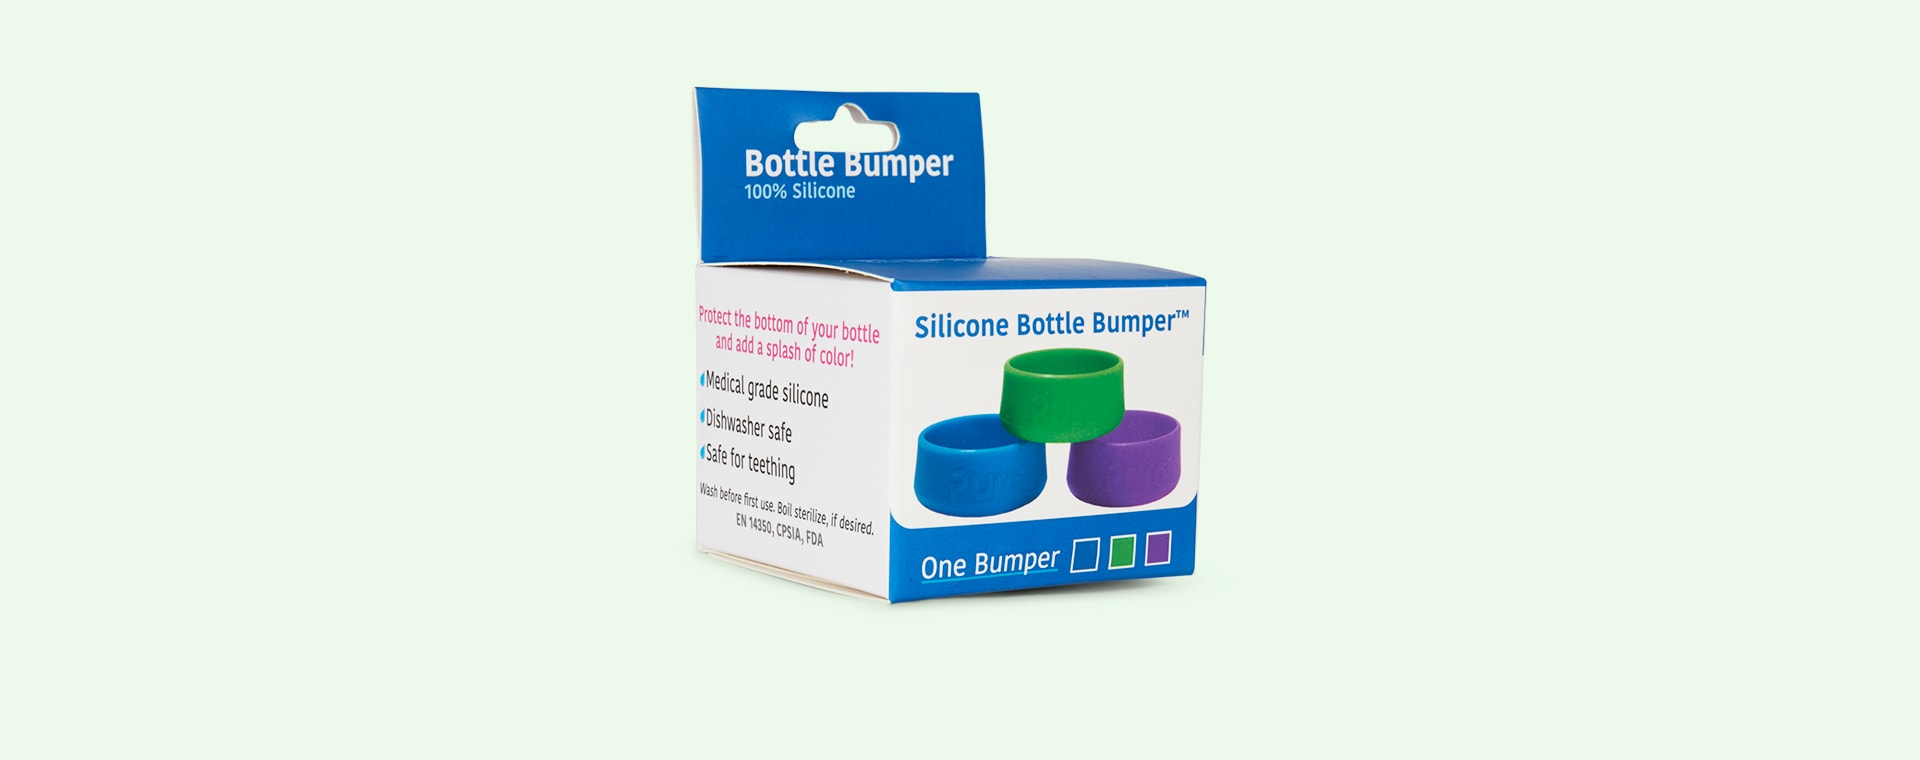 Spring Green Pura Silicone Bottle Bumper